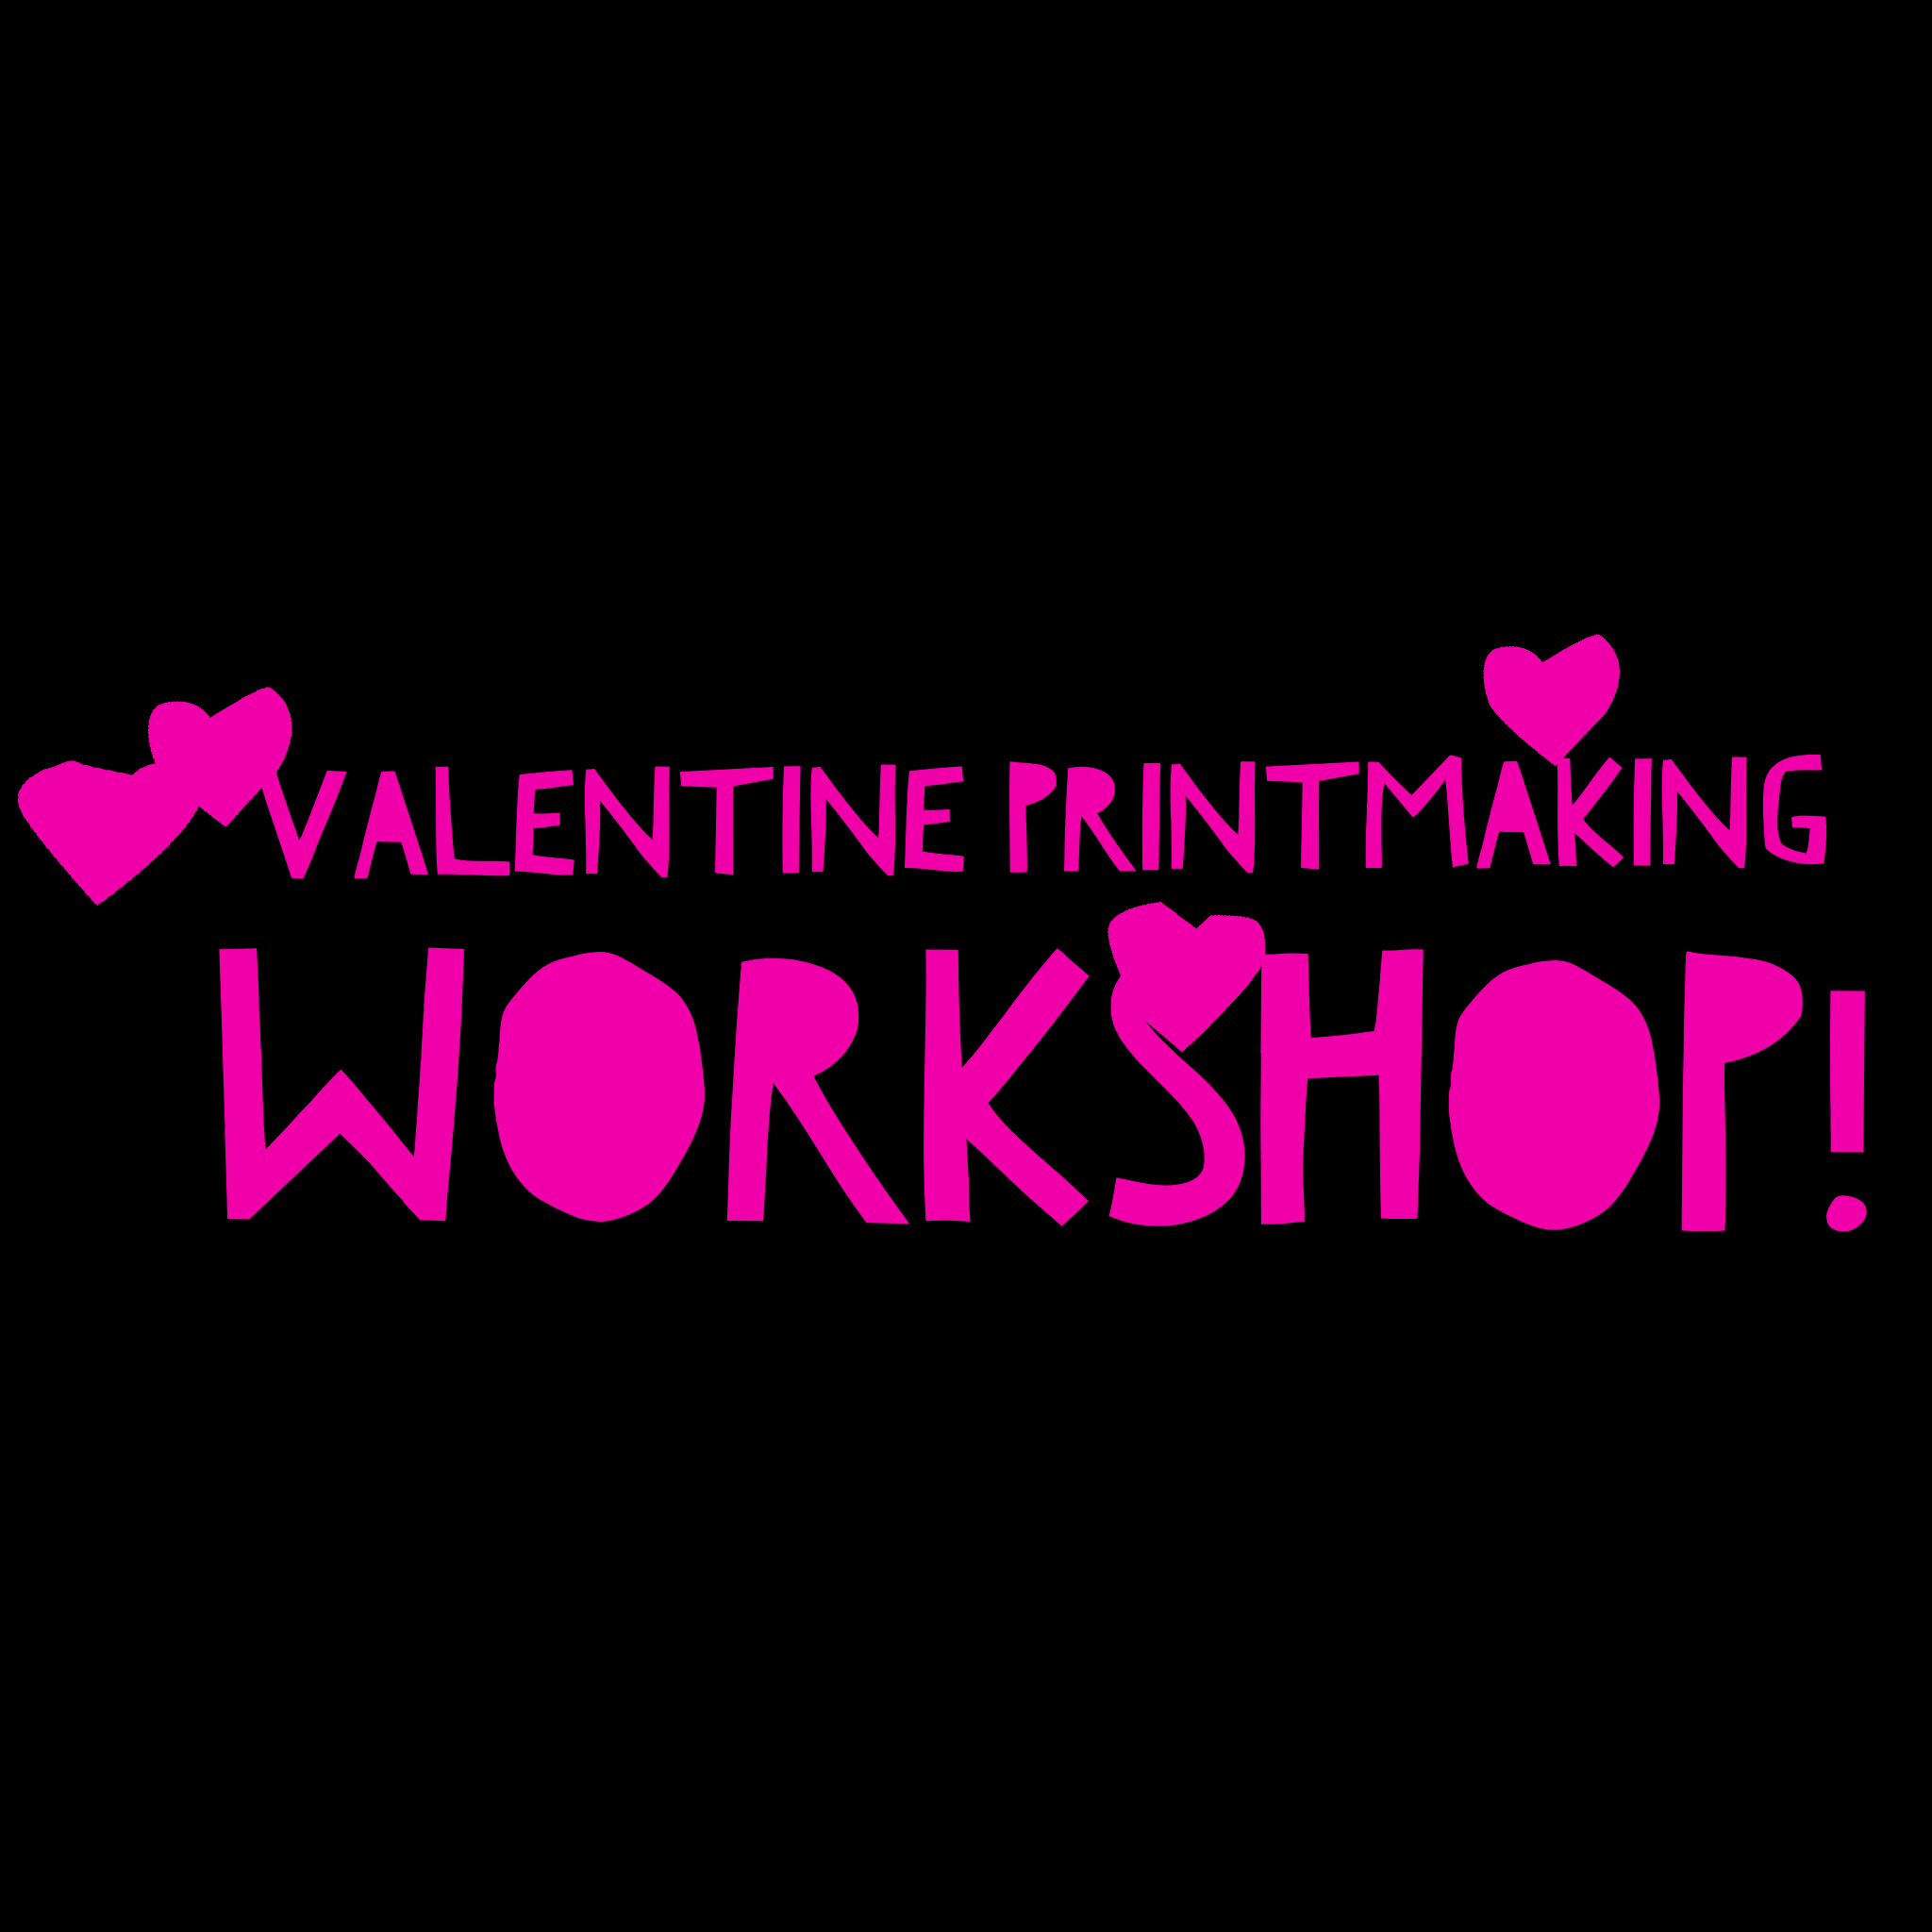 valentine printmaking workshop